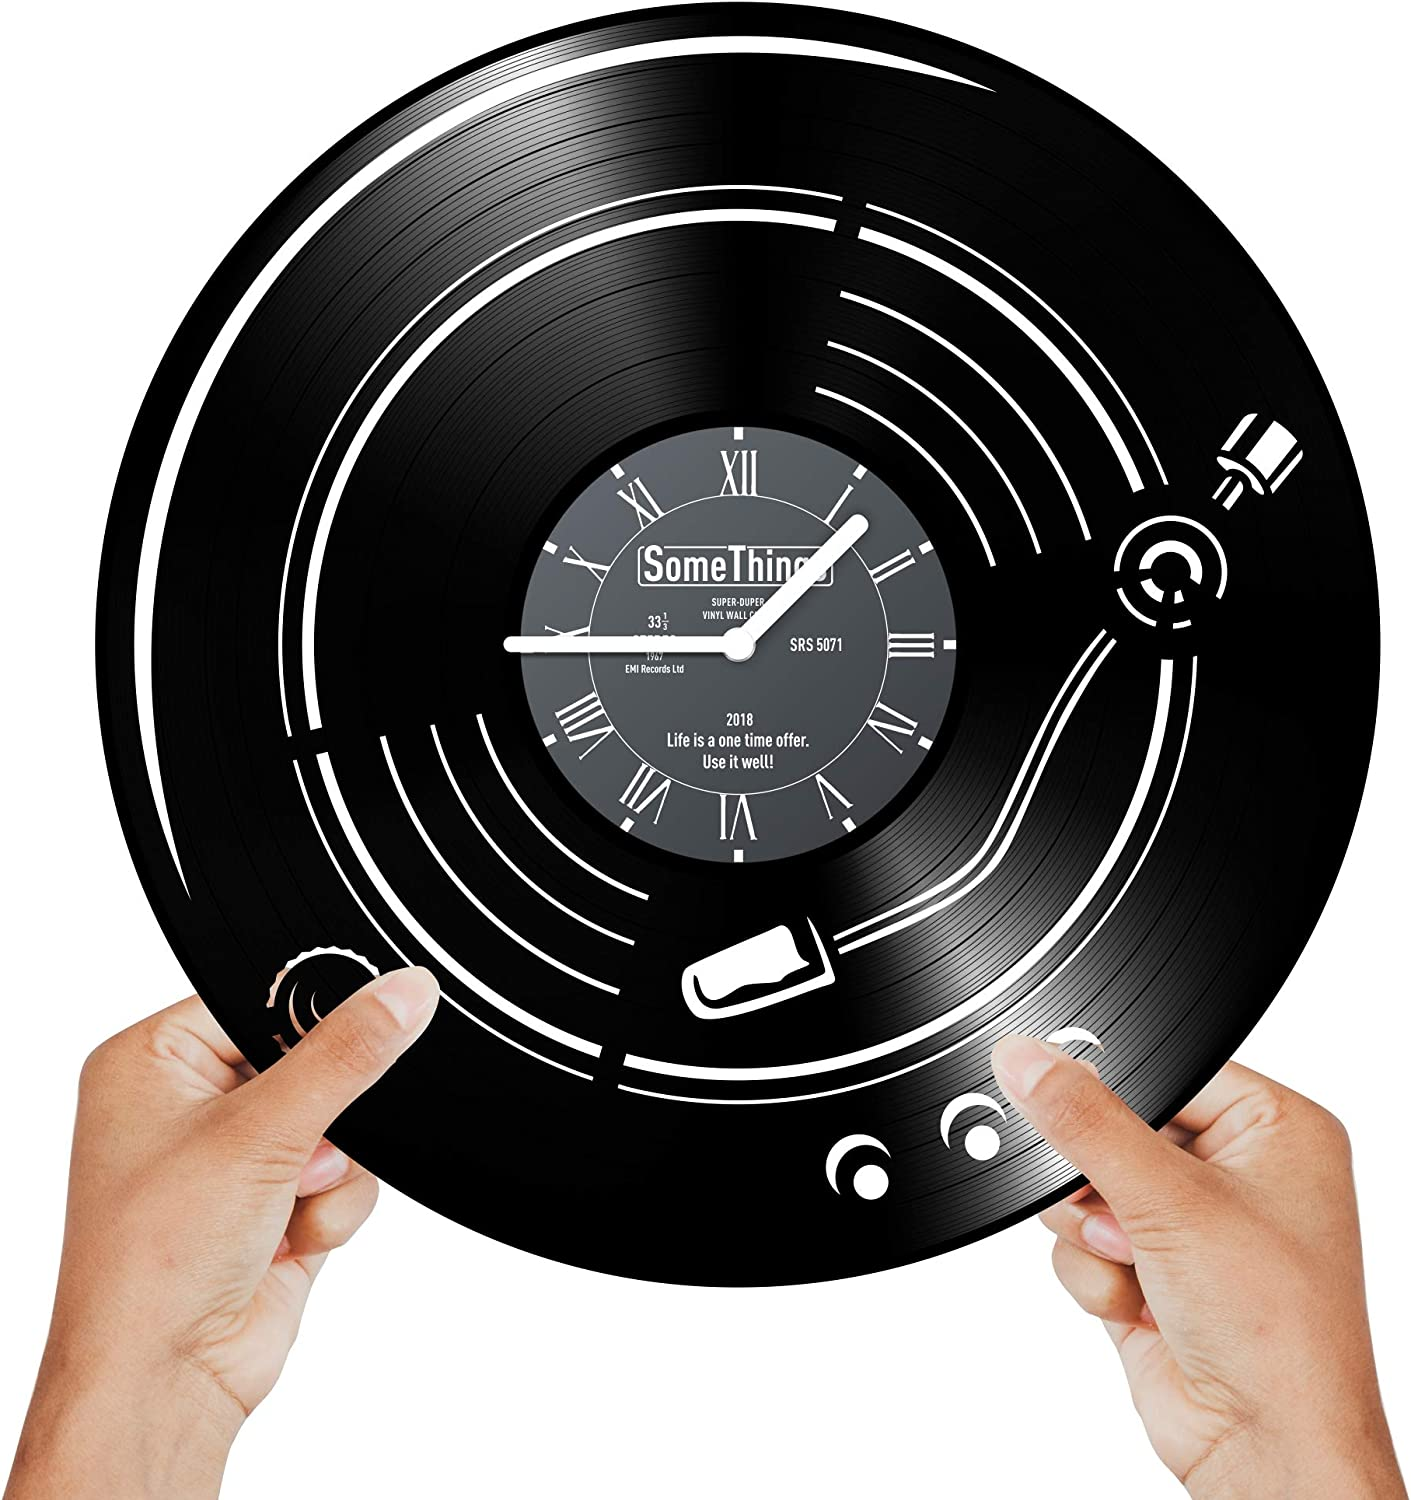 Music Vinyl Clock - Phonograph and Gramophone Record LP Player Themed Gifts Idea for Music lovers Men Women and Kids Unique - Musicians Notes Vintage Theme Art Wall Decor and Decorations Artwork Black